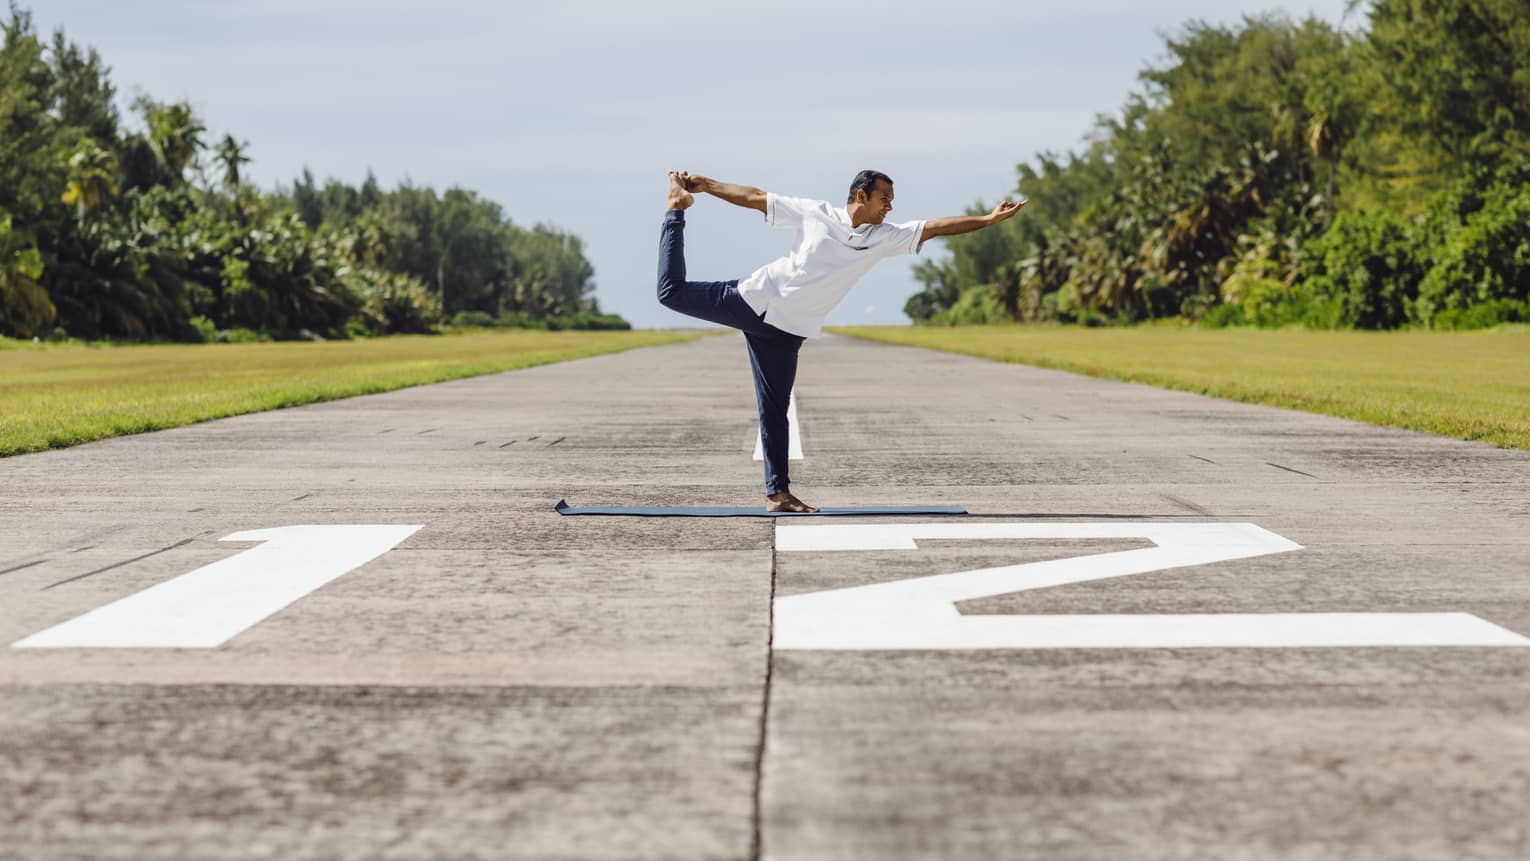 A man doing yoga – specifically ballerina pose – on an airplane runway